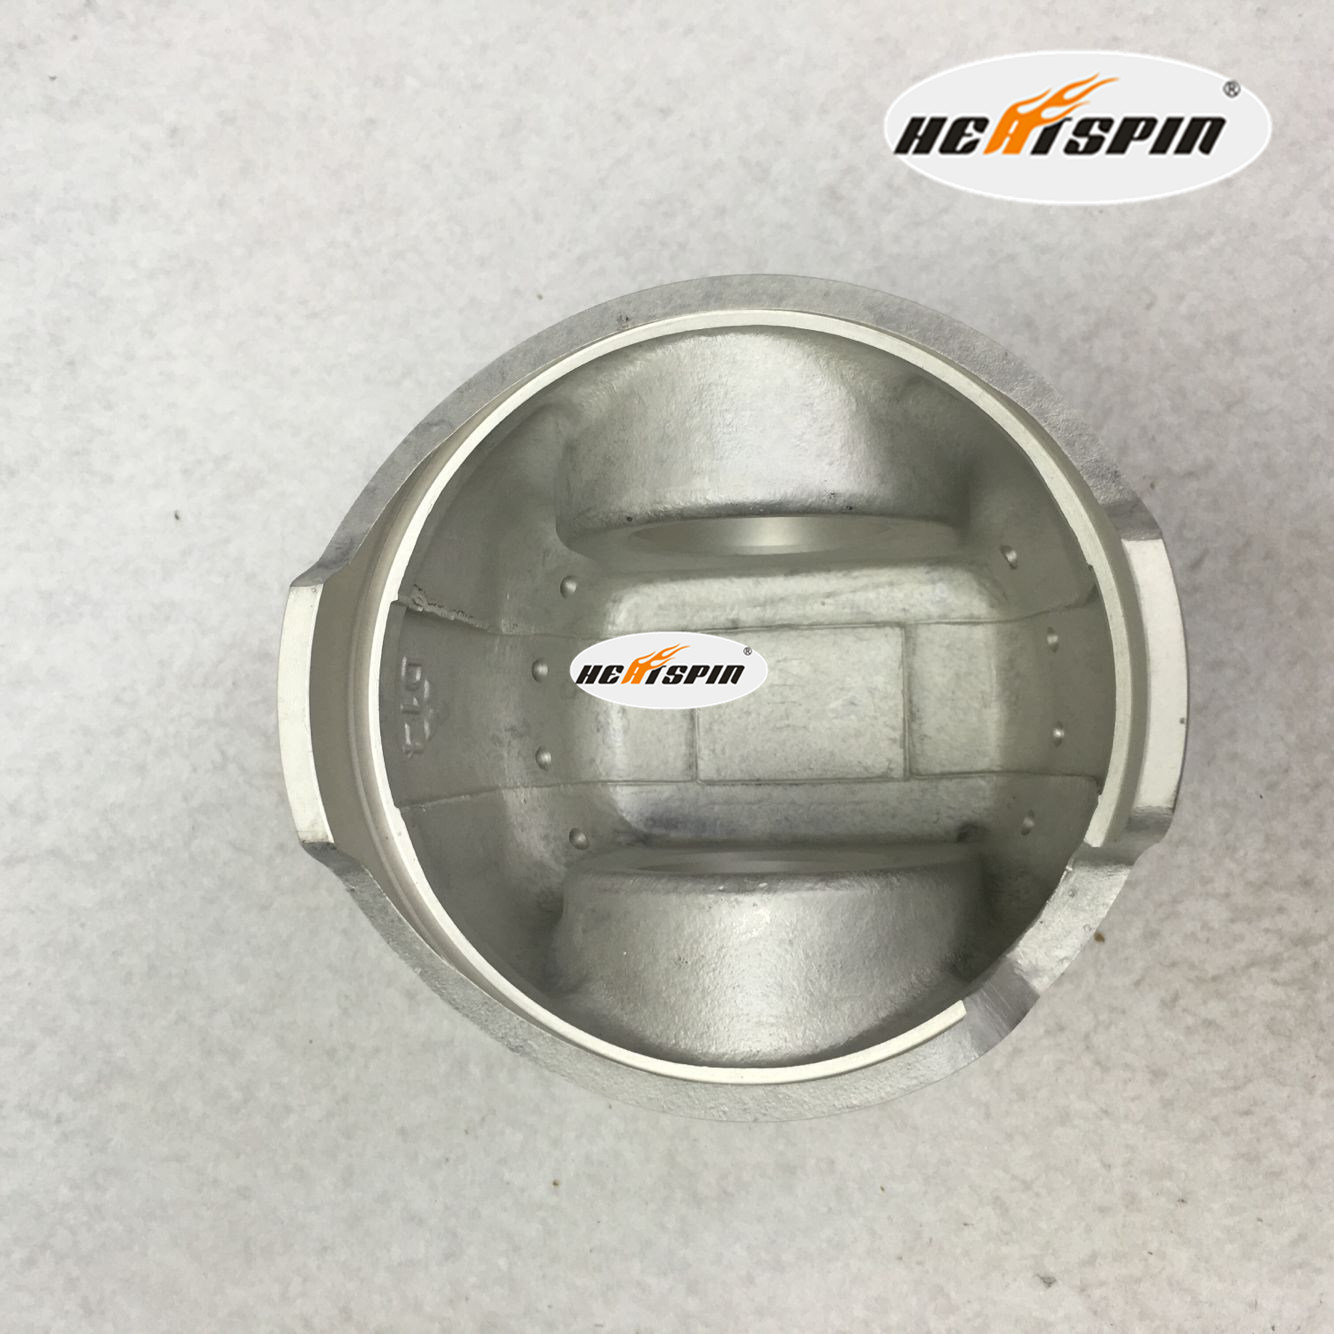 Diesel Engine Piston 6D14 for Mitsubishi Auto Spare Part Me032619 pictures & photos